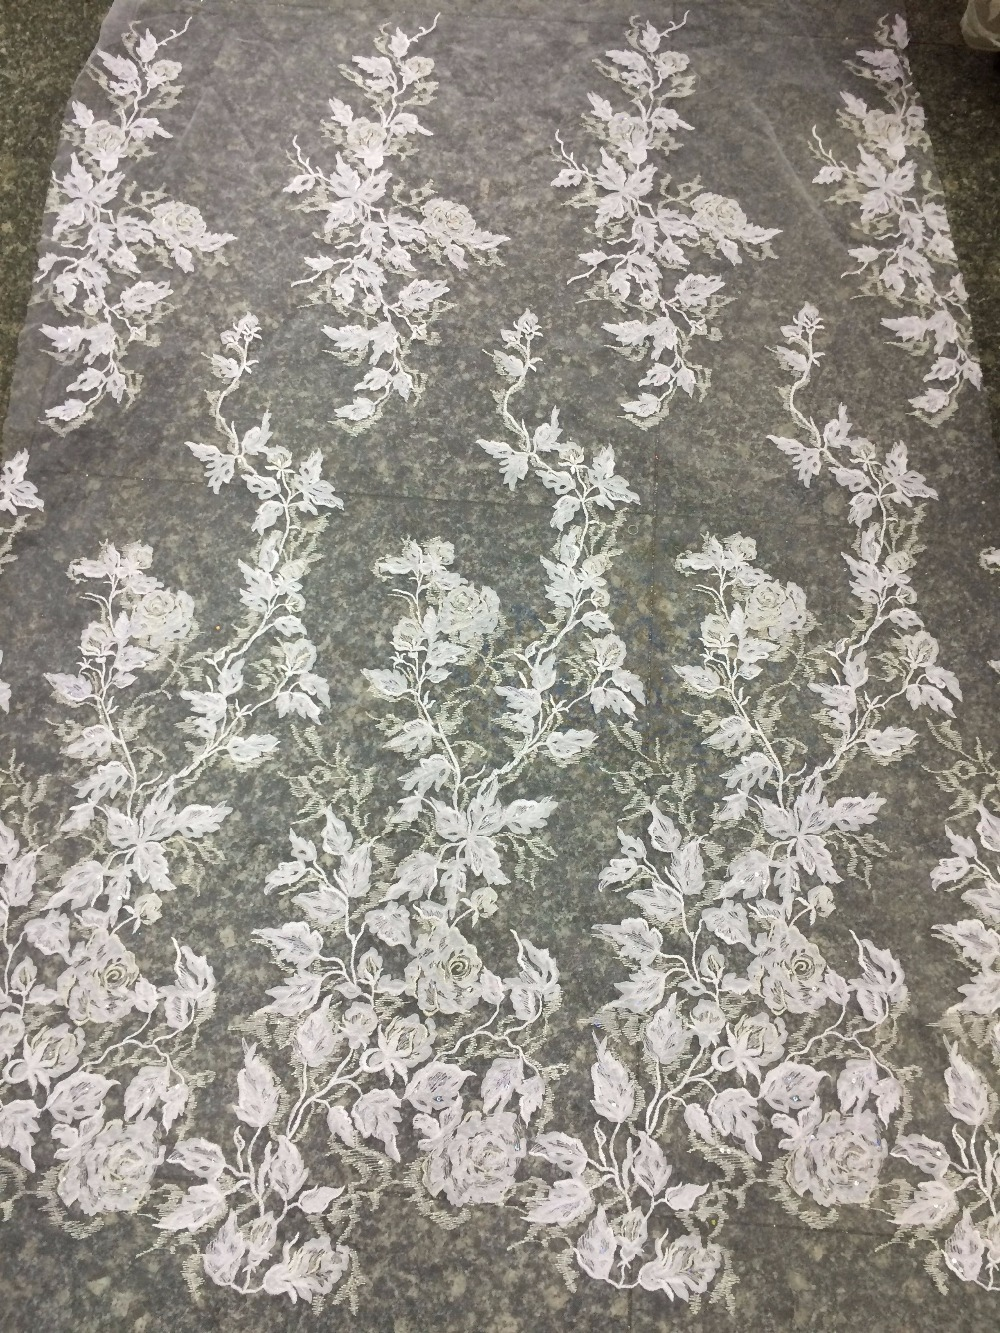 African Nigerian Lace Fabric SYJ 41813 African French Lace Fabric African embroidered Lace High Quality